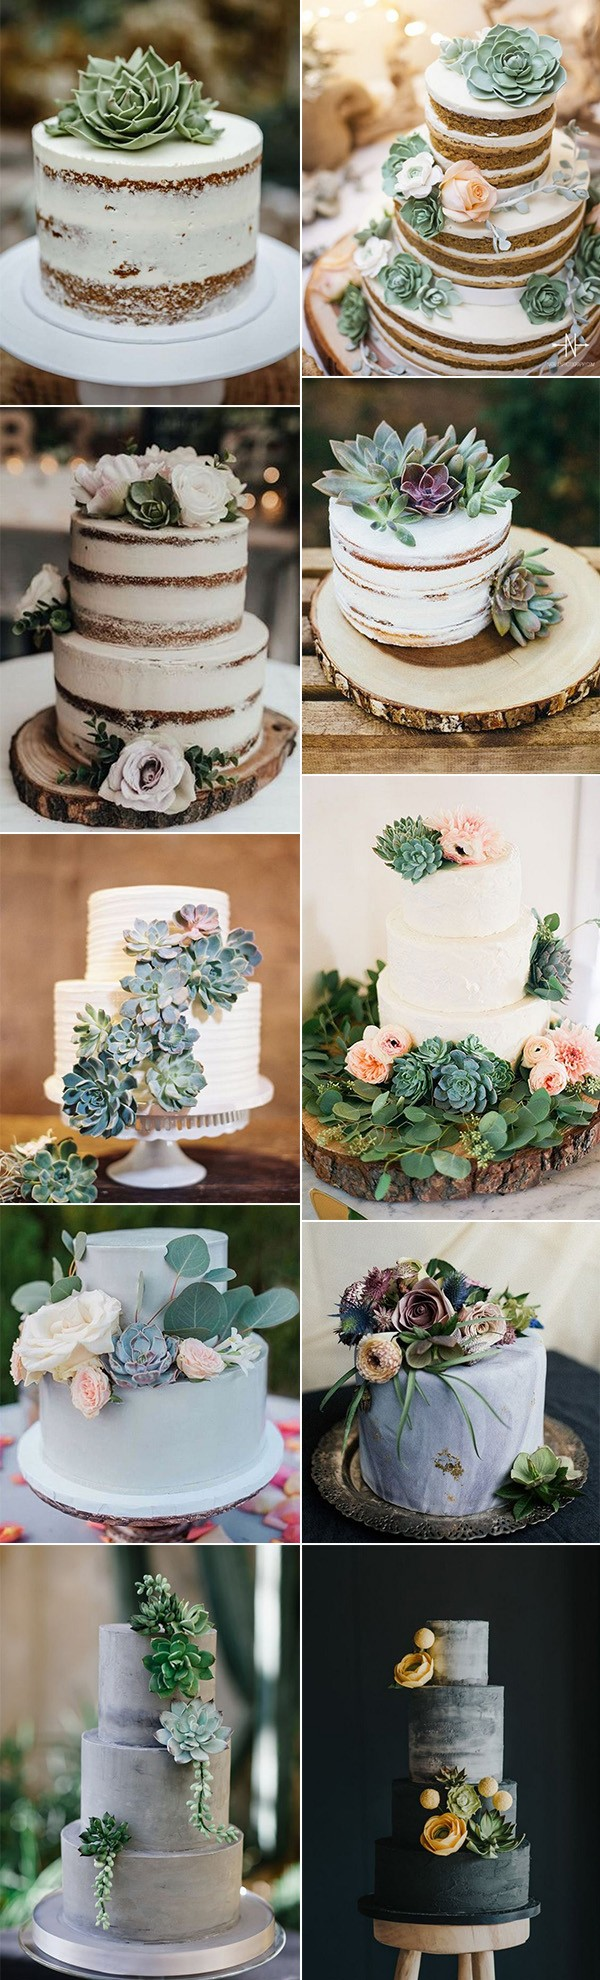 trending wedding cakes with succulents